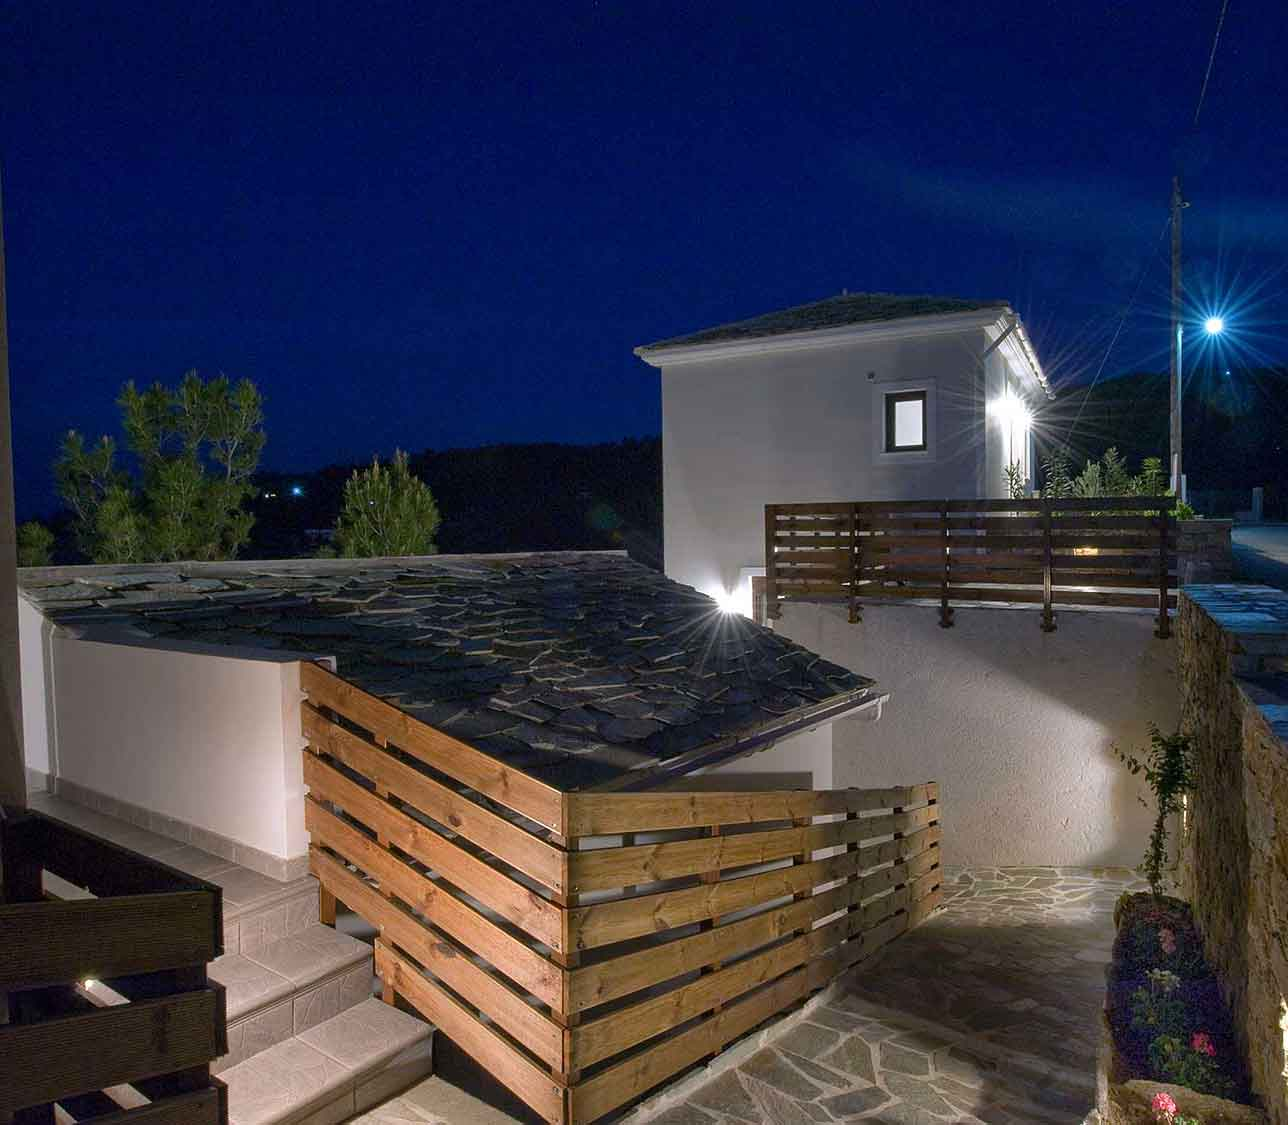 ikaria olivia villas night view